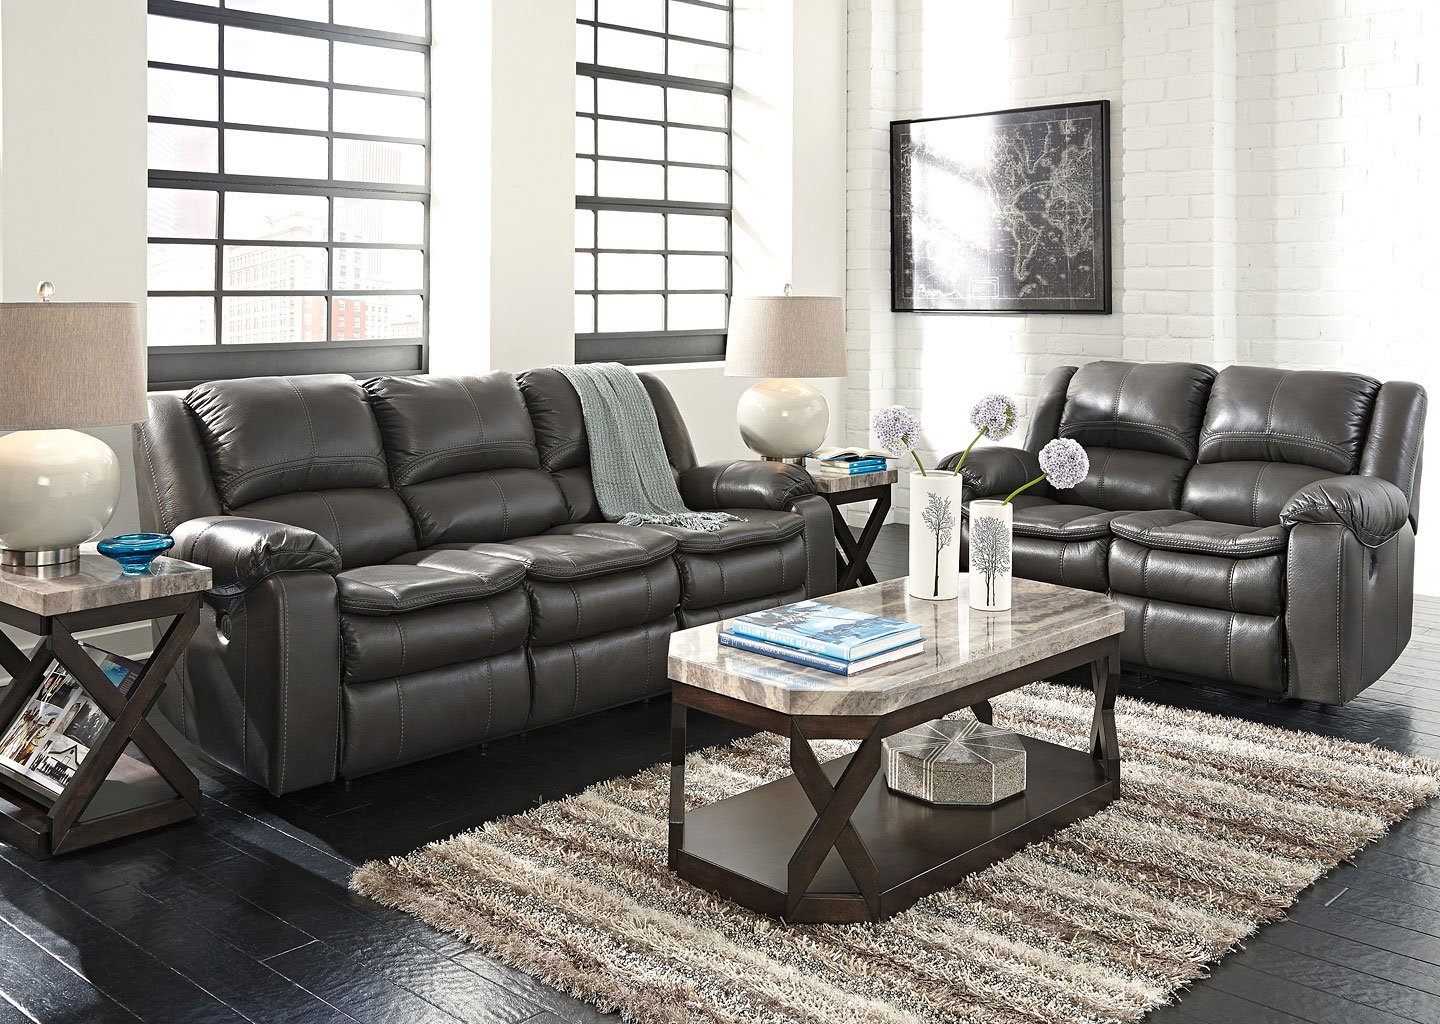 Long Knight Gray Reclining Living Room Set Living Room Sets Living Room Furniture Living Room